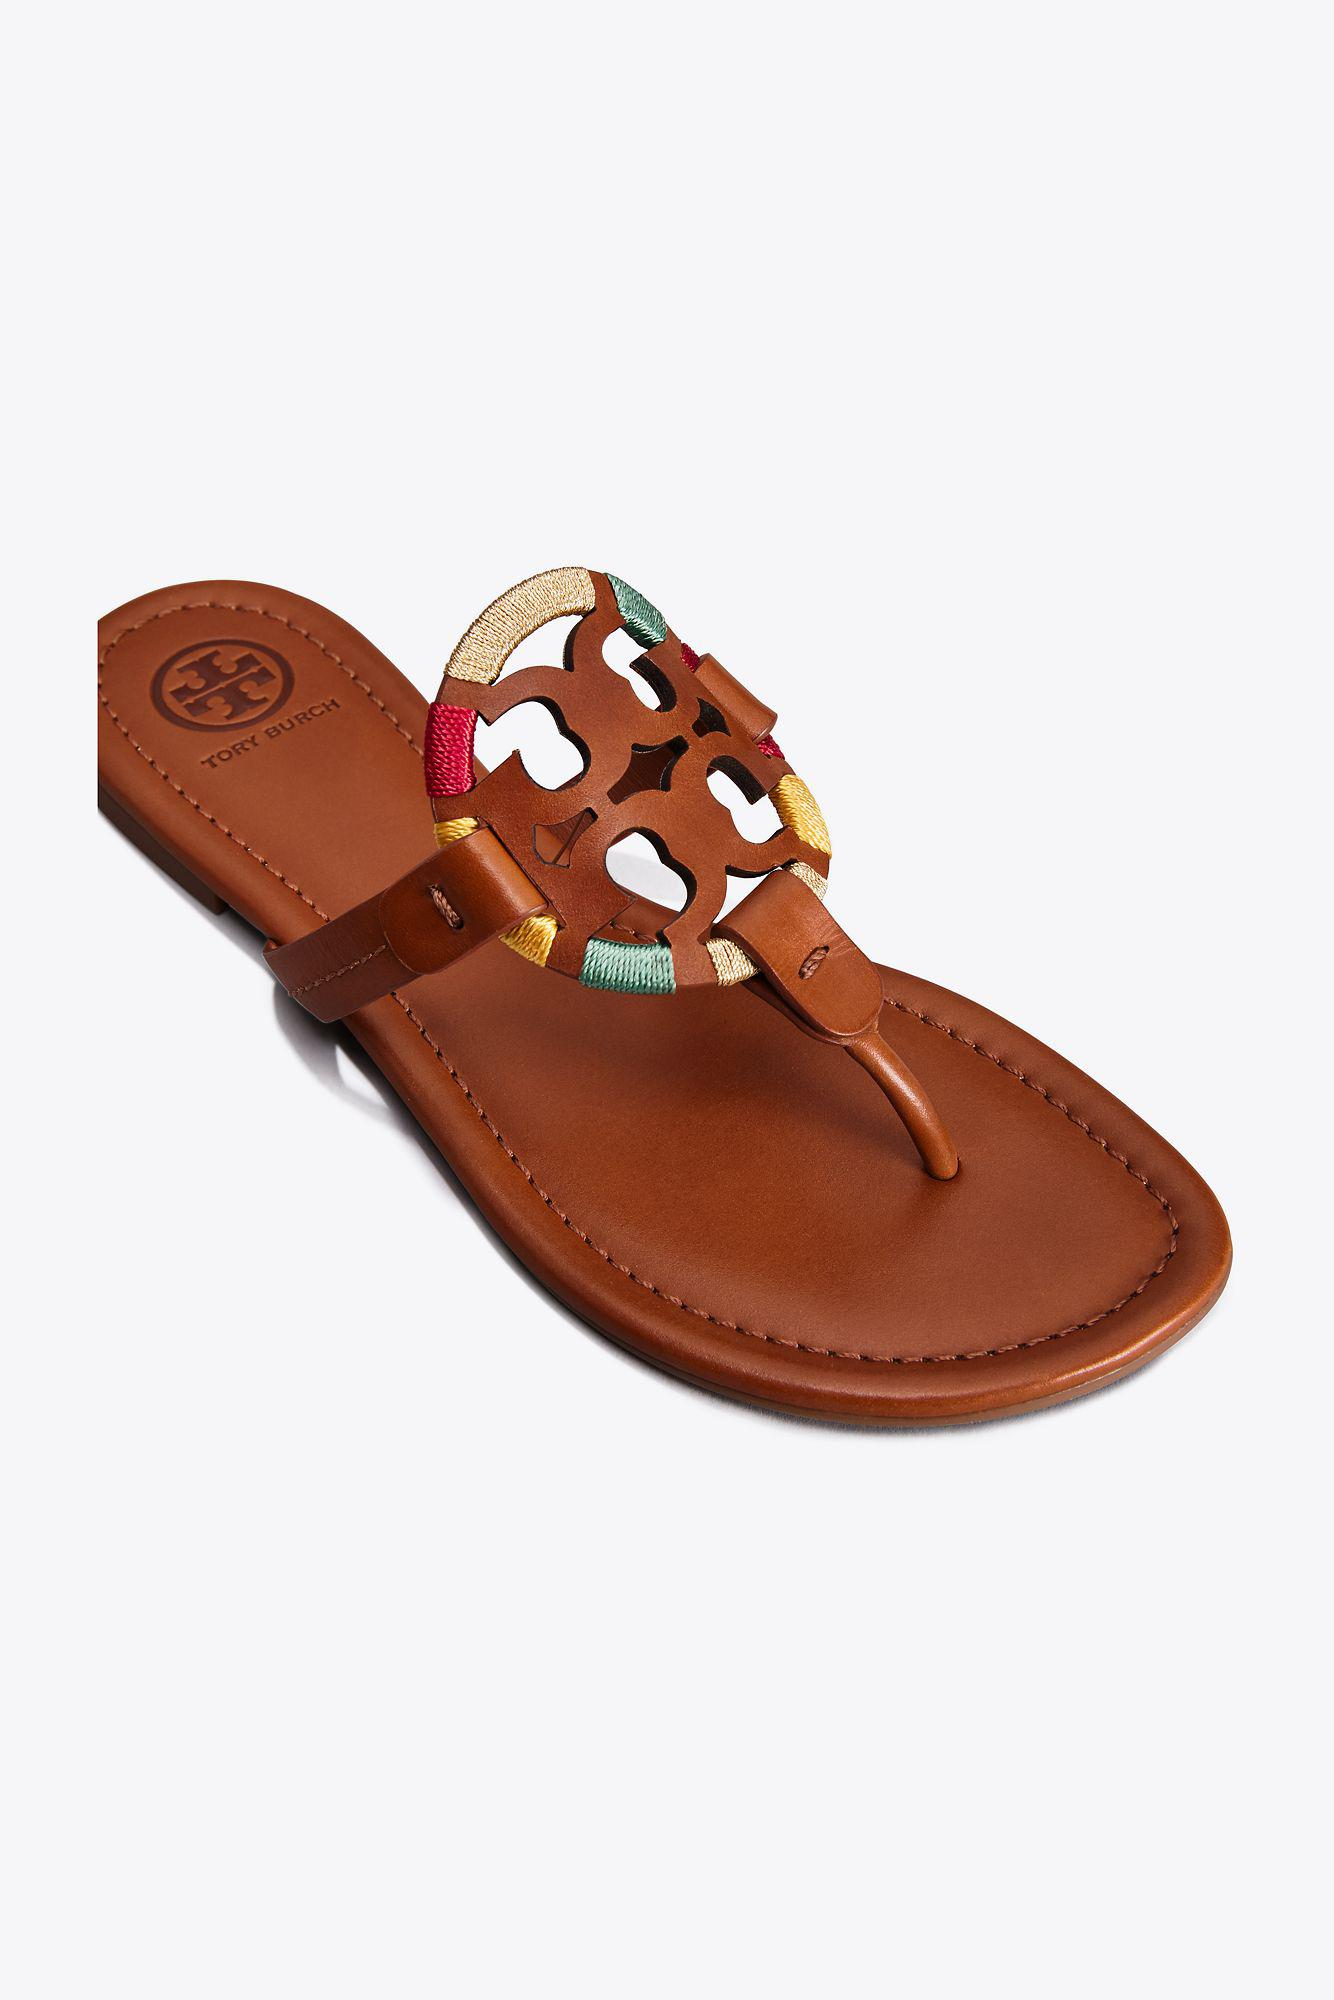 6c61b6ad14b5e Lyst - Tory Burch Miller Embroidered Sandal